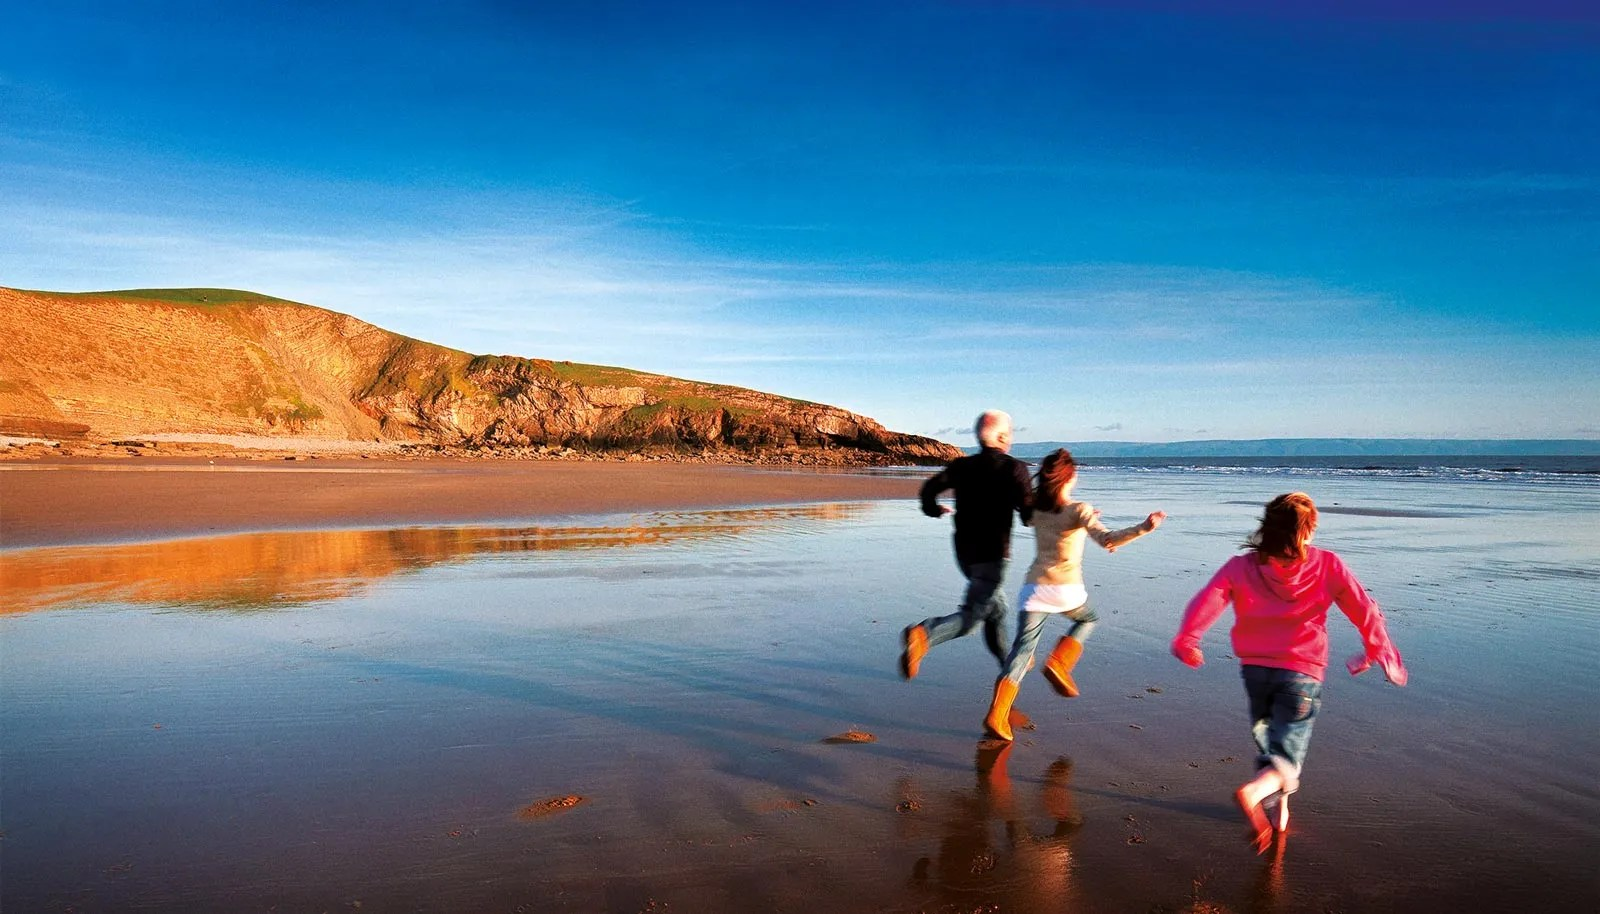 A family running on the beach towards the waves in Wales